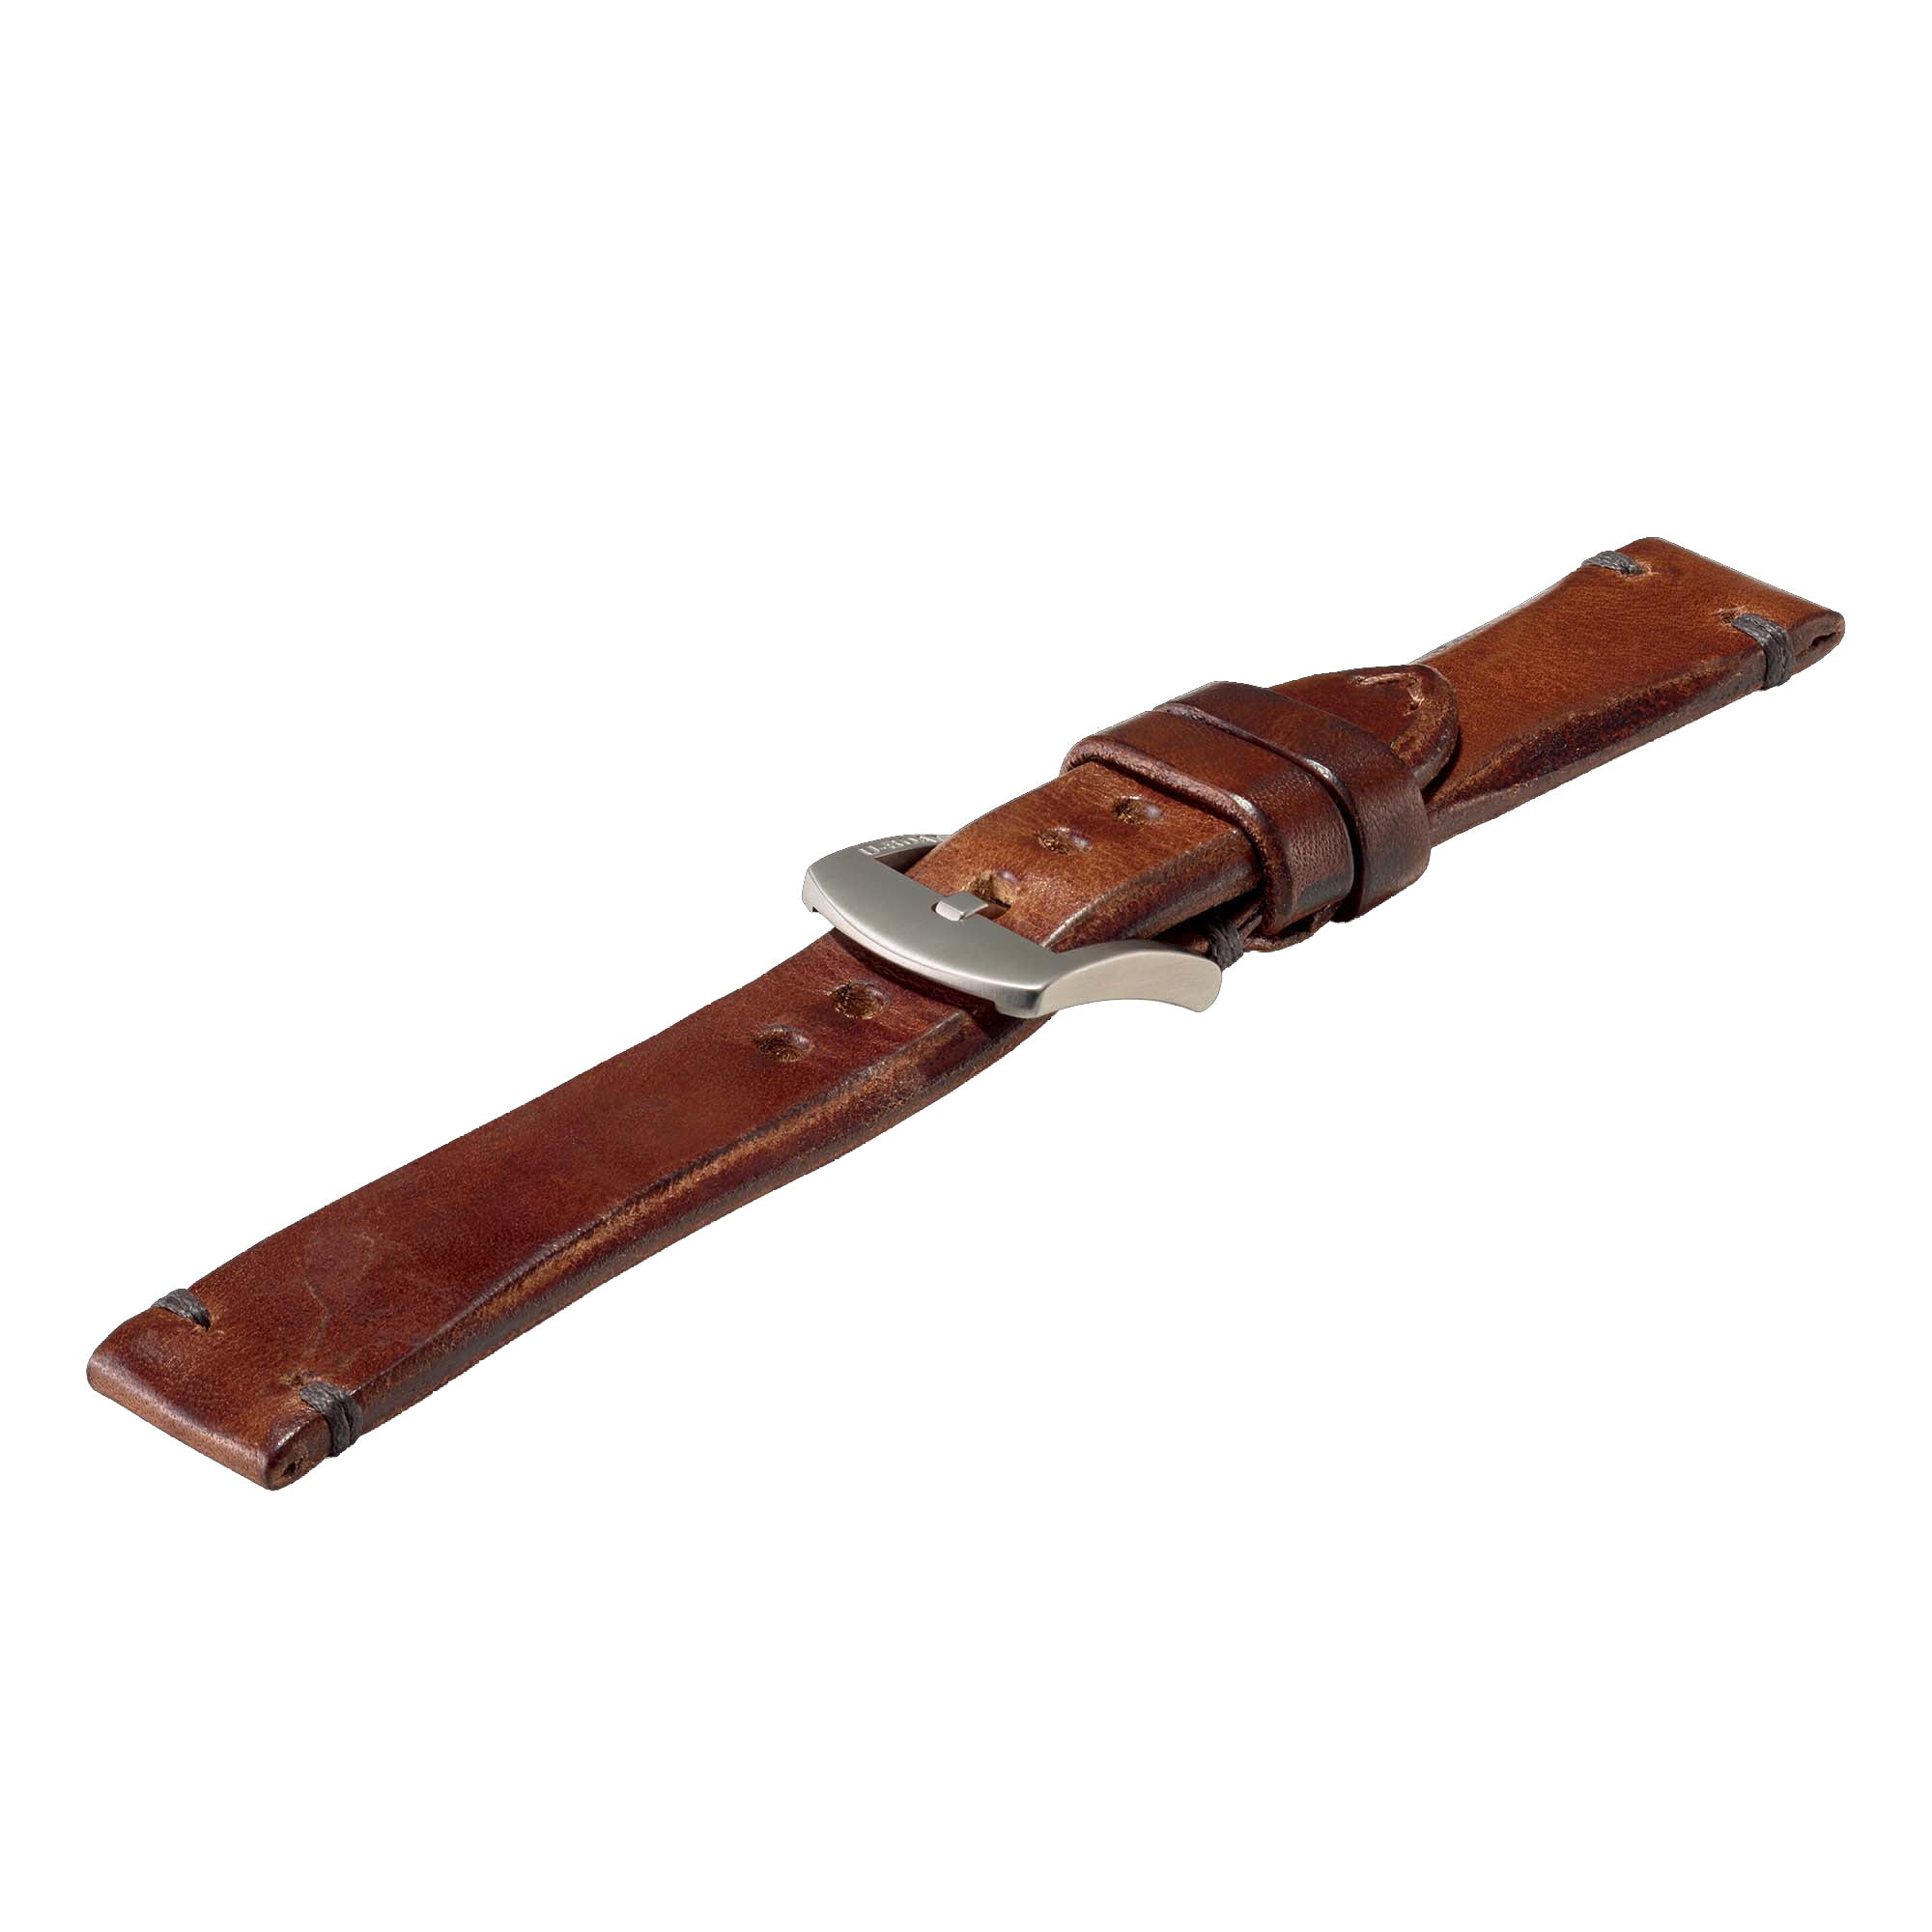 u-boat strap 4105 ss 20/20 leather brown buckle